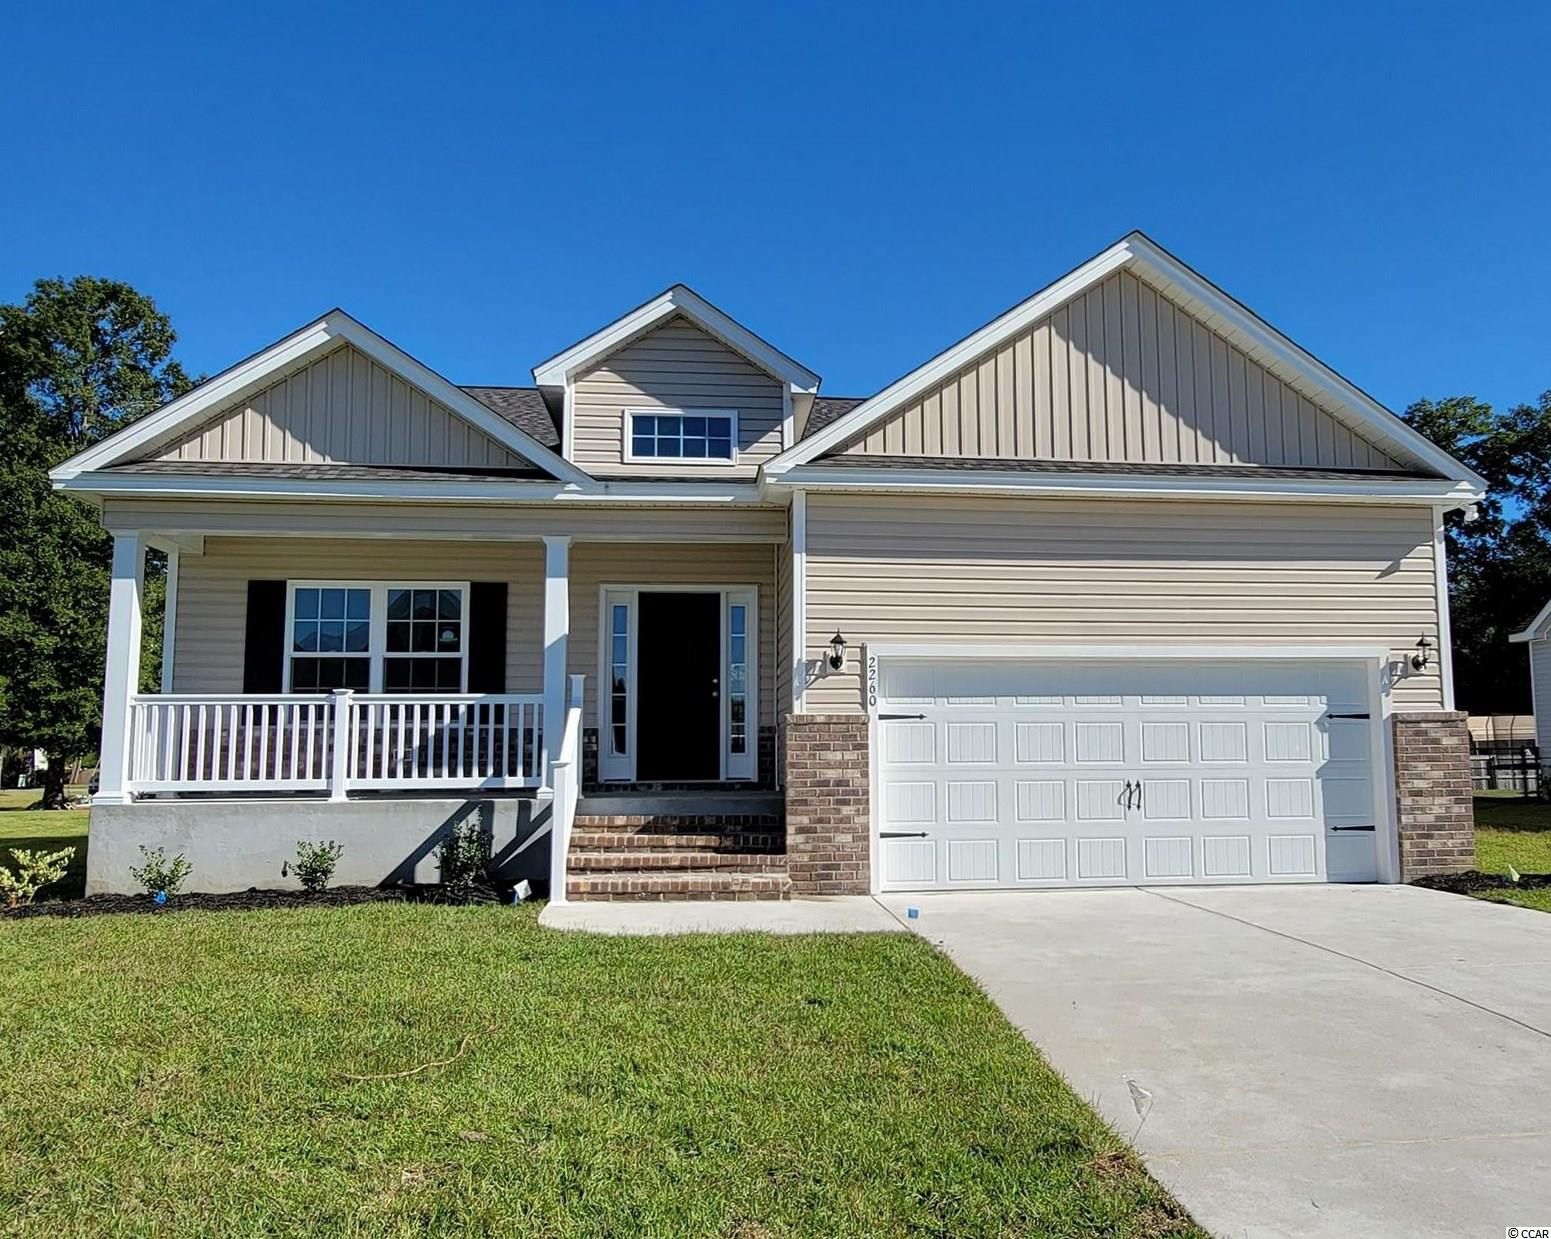 "This ""Busbee"" model has it all! Open concept home with a modern design on a spacious lot. This floor plan features lots of windows and 9ft. ceilings allowing natural light to flow in. The living and dining rooms are adjacent to the kitchen which makes entertaining effortless. This Kitchen includes granite countertops, Benton white painted cabinets, and stainless appliances. Come see all the insightful features designed with you and your lifestyle in mind including a split bedroom layout, beautiful yet durable  waterproof  Laminate flooring"